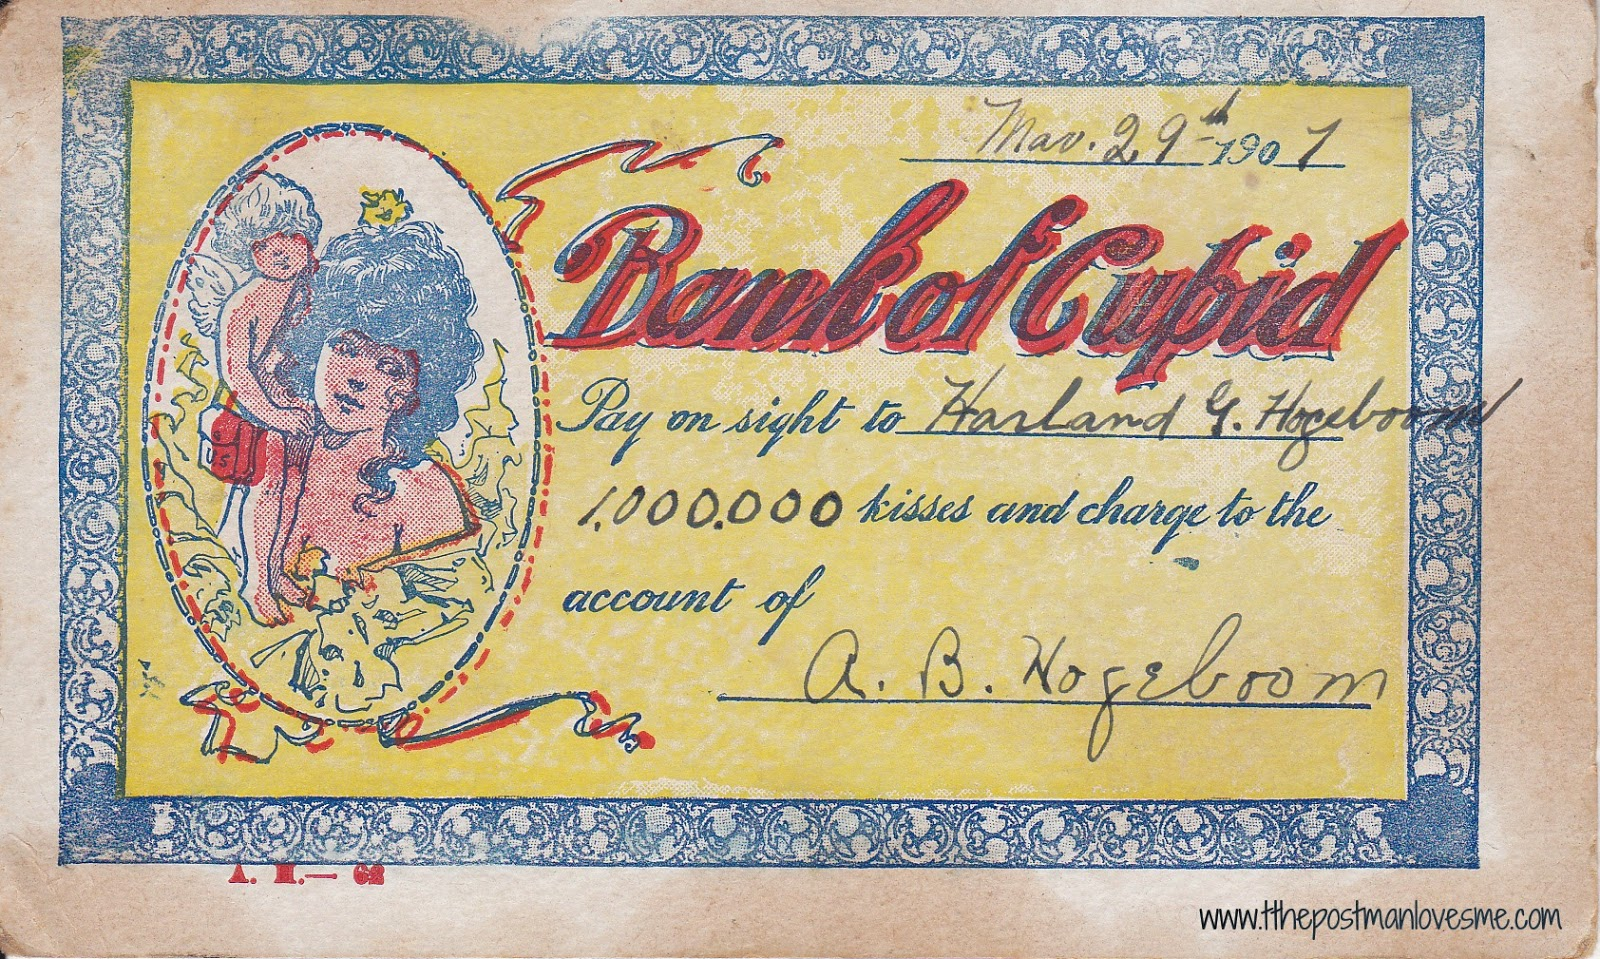 Bank of Cupid Vintage Postcard - pay 1,000,000 kisses